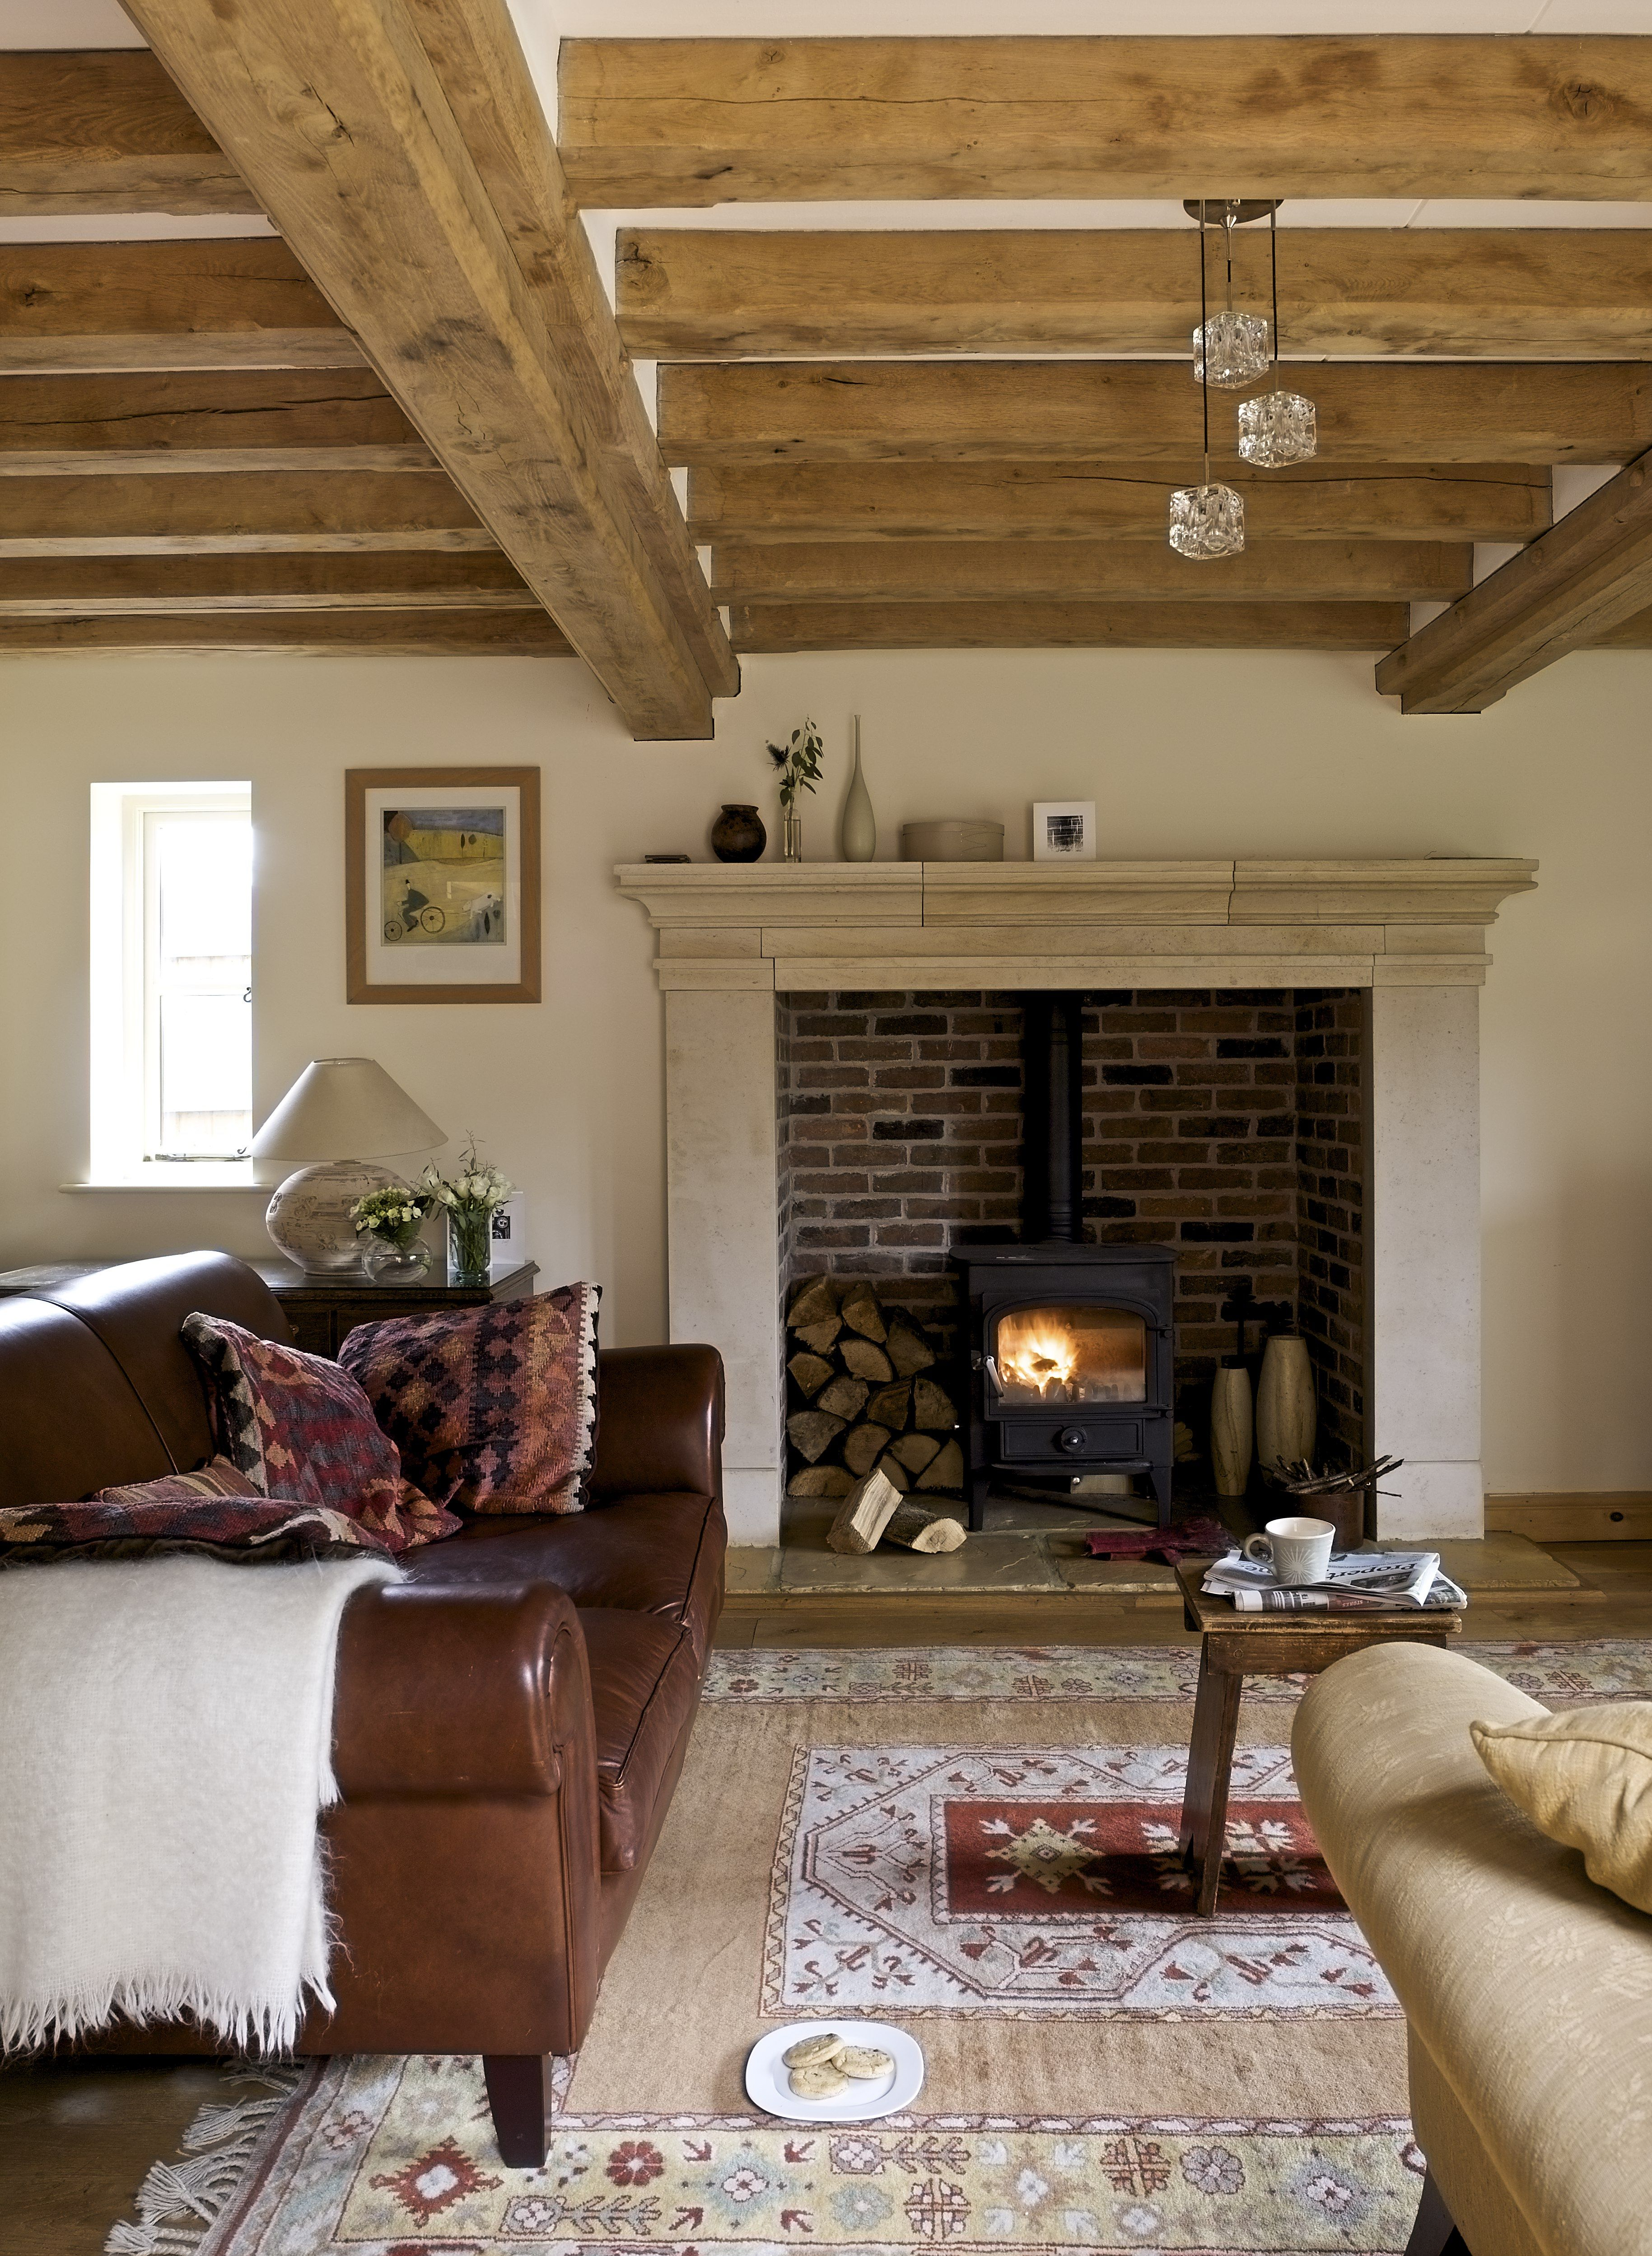 Wood Stove Living Room Design: Pin By Laura Campbell On Like This